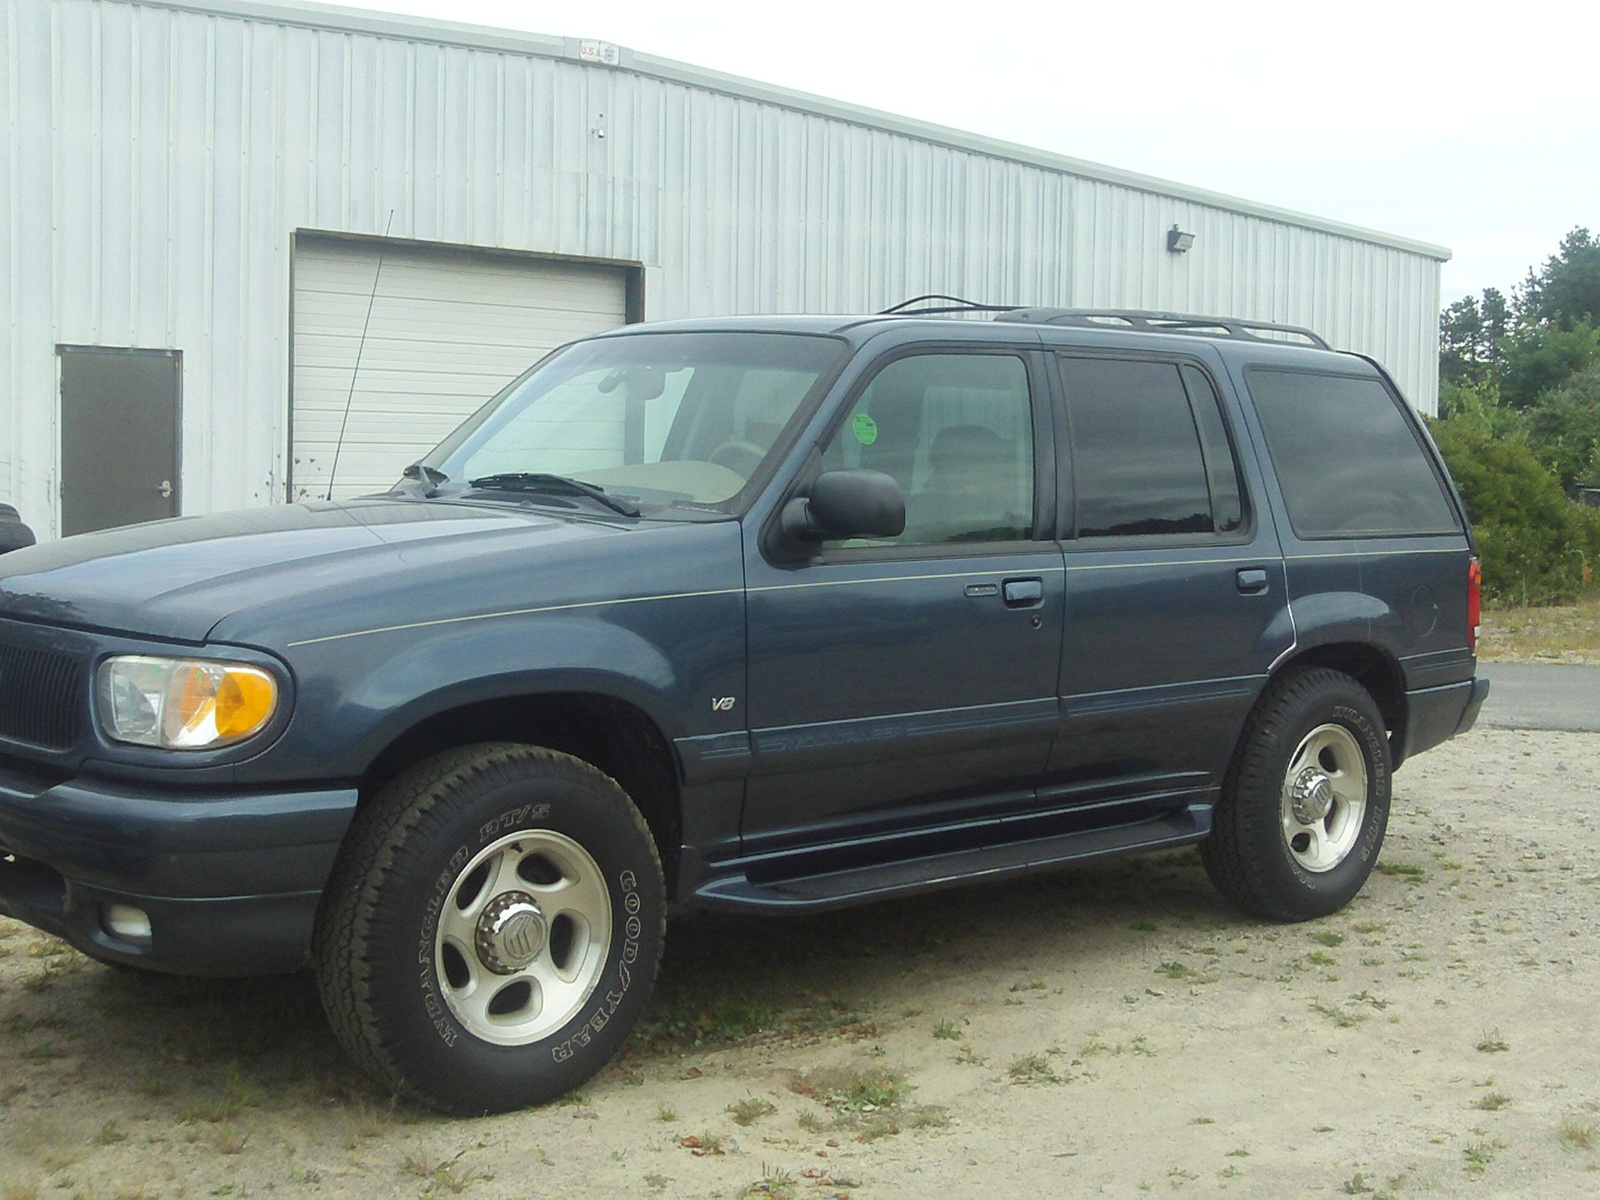 1999 Mercury Mountaineer #4